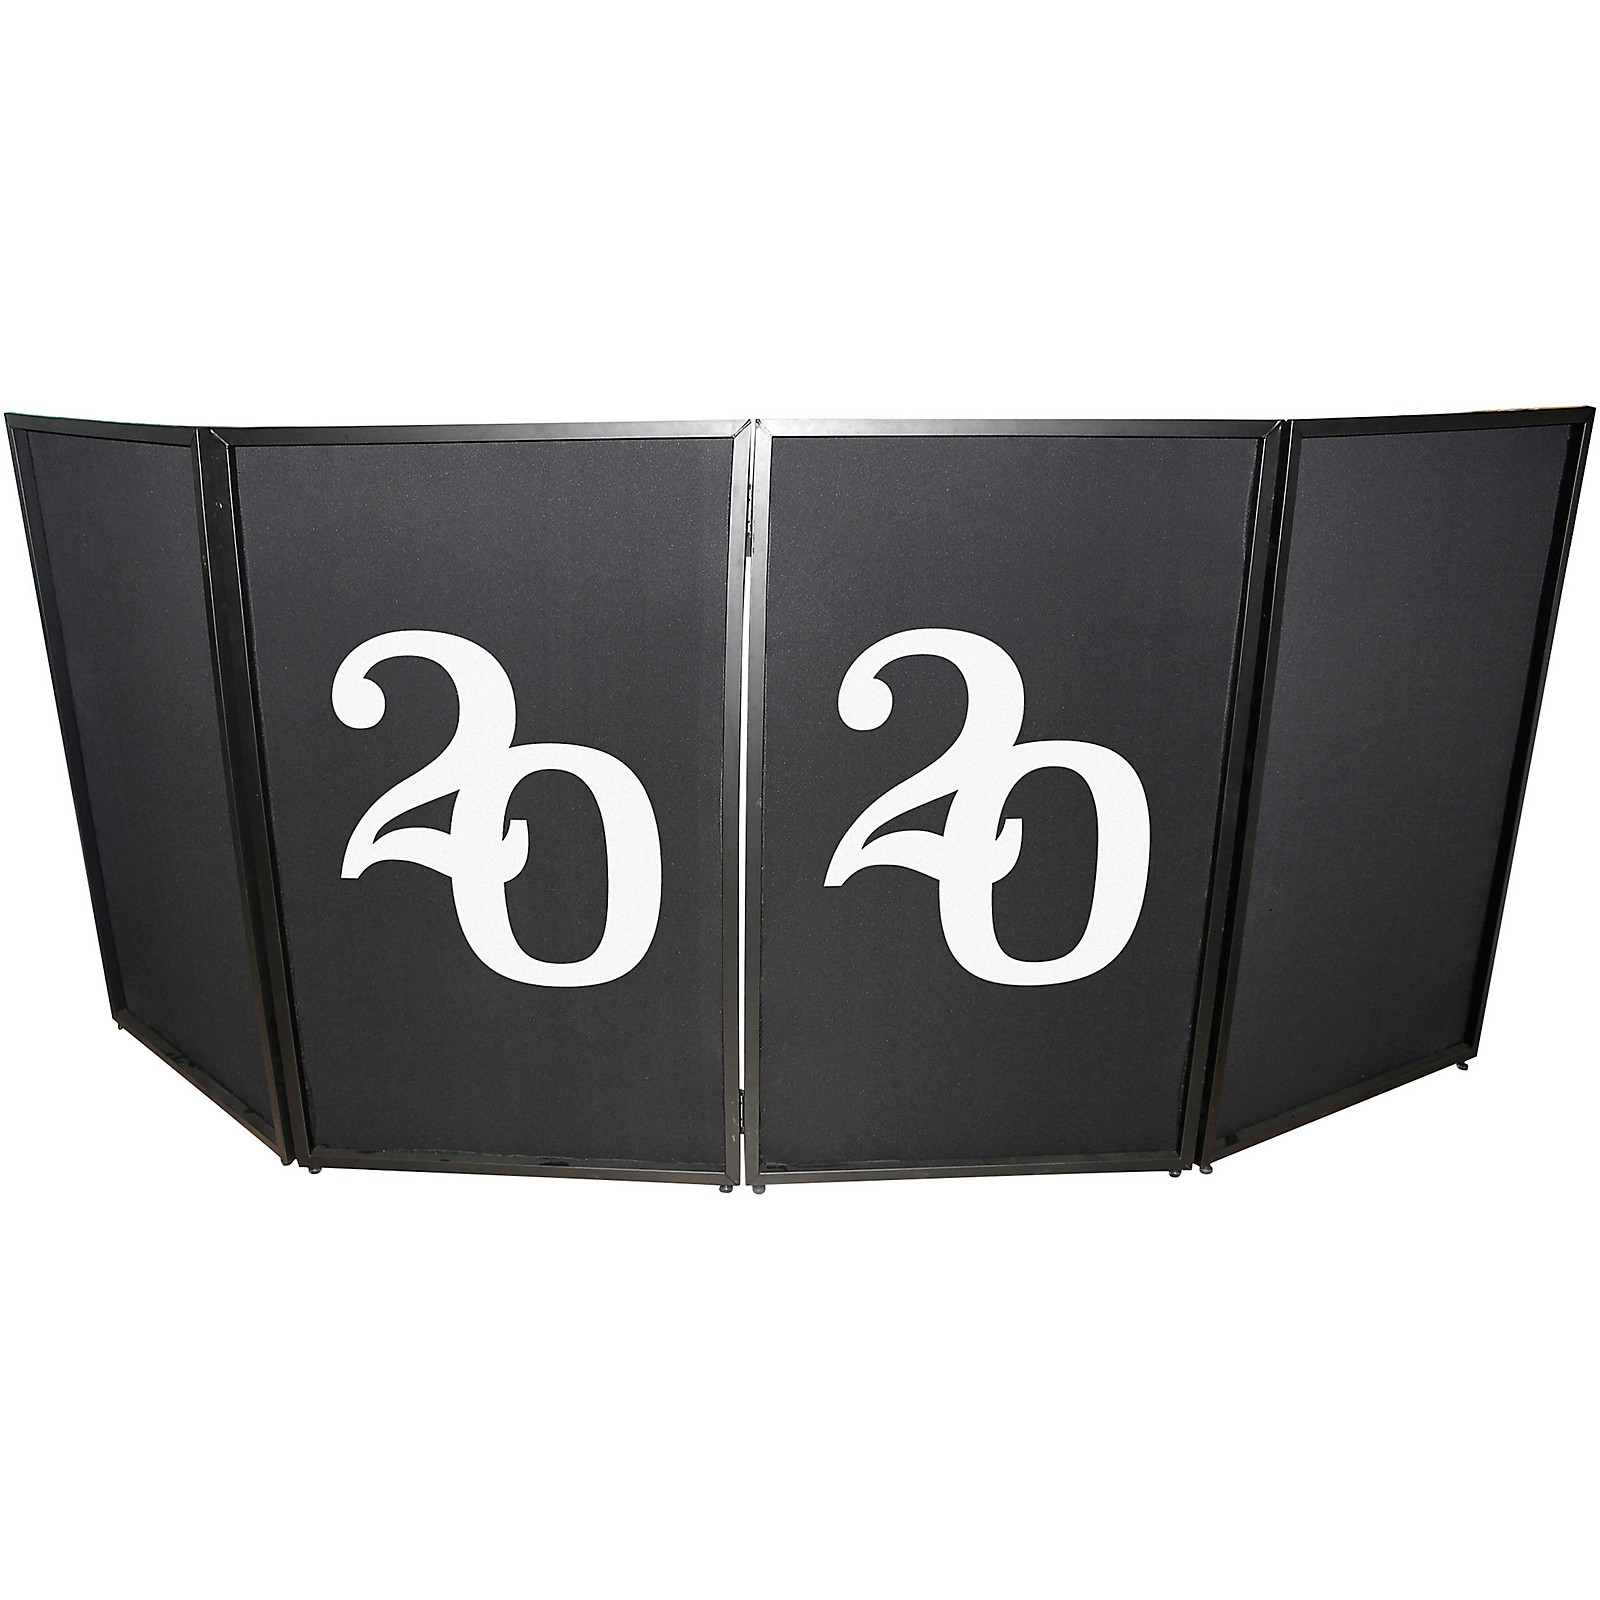 ProX XF-S2020X2 2020 New Year Facade Enhancement Scrims - White Numbers on Black   Set of Two